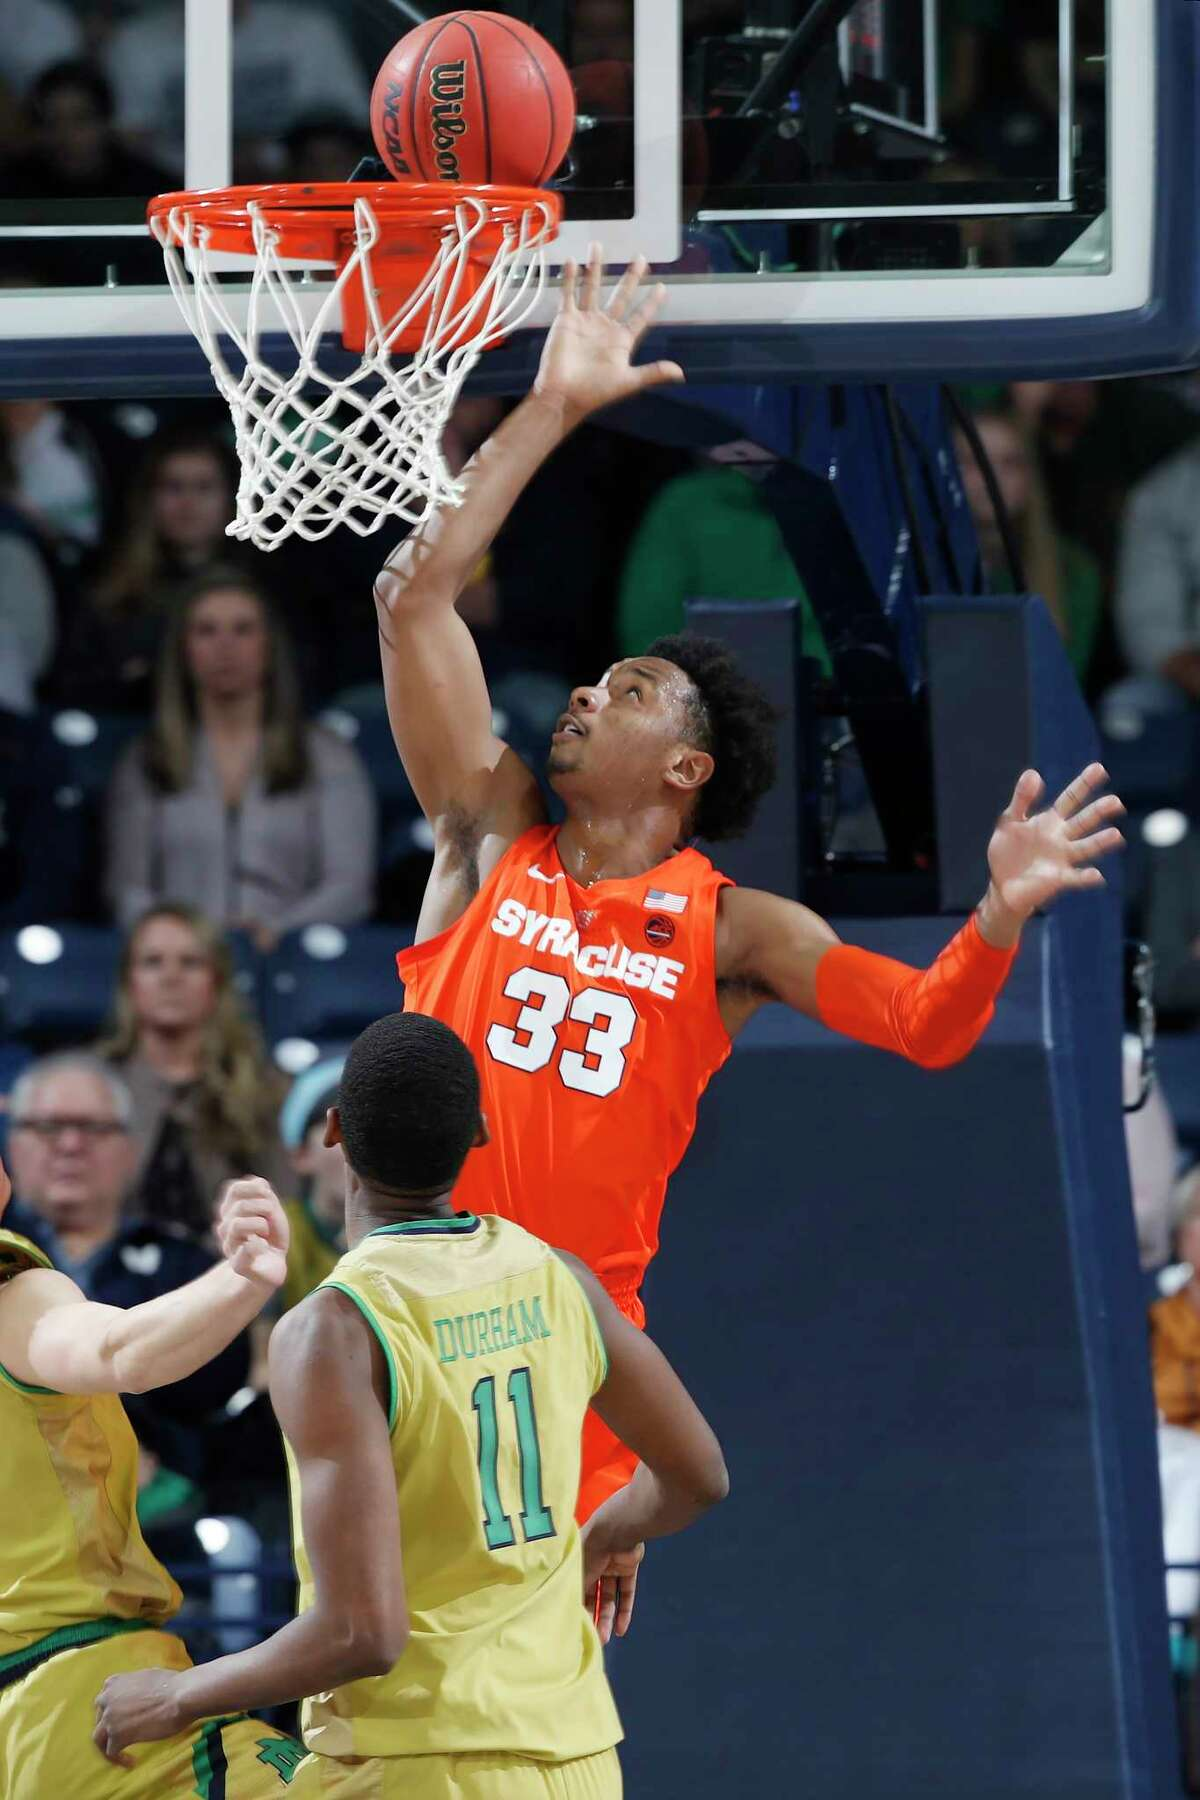 SOUTH BEND, IN - JANUARY 05: Elijah Hughes #33 of the Syracuse Orange goes to the basket against the Notre Dame Fighting Irish in the first half of the game at Purcell Pavilion on January 5, 2019 in South Bend, Indiana. Syracuse won 72-62. (Photo by Joe Robbins/Getty Images)